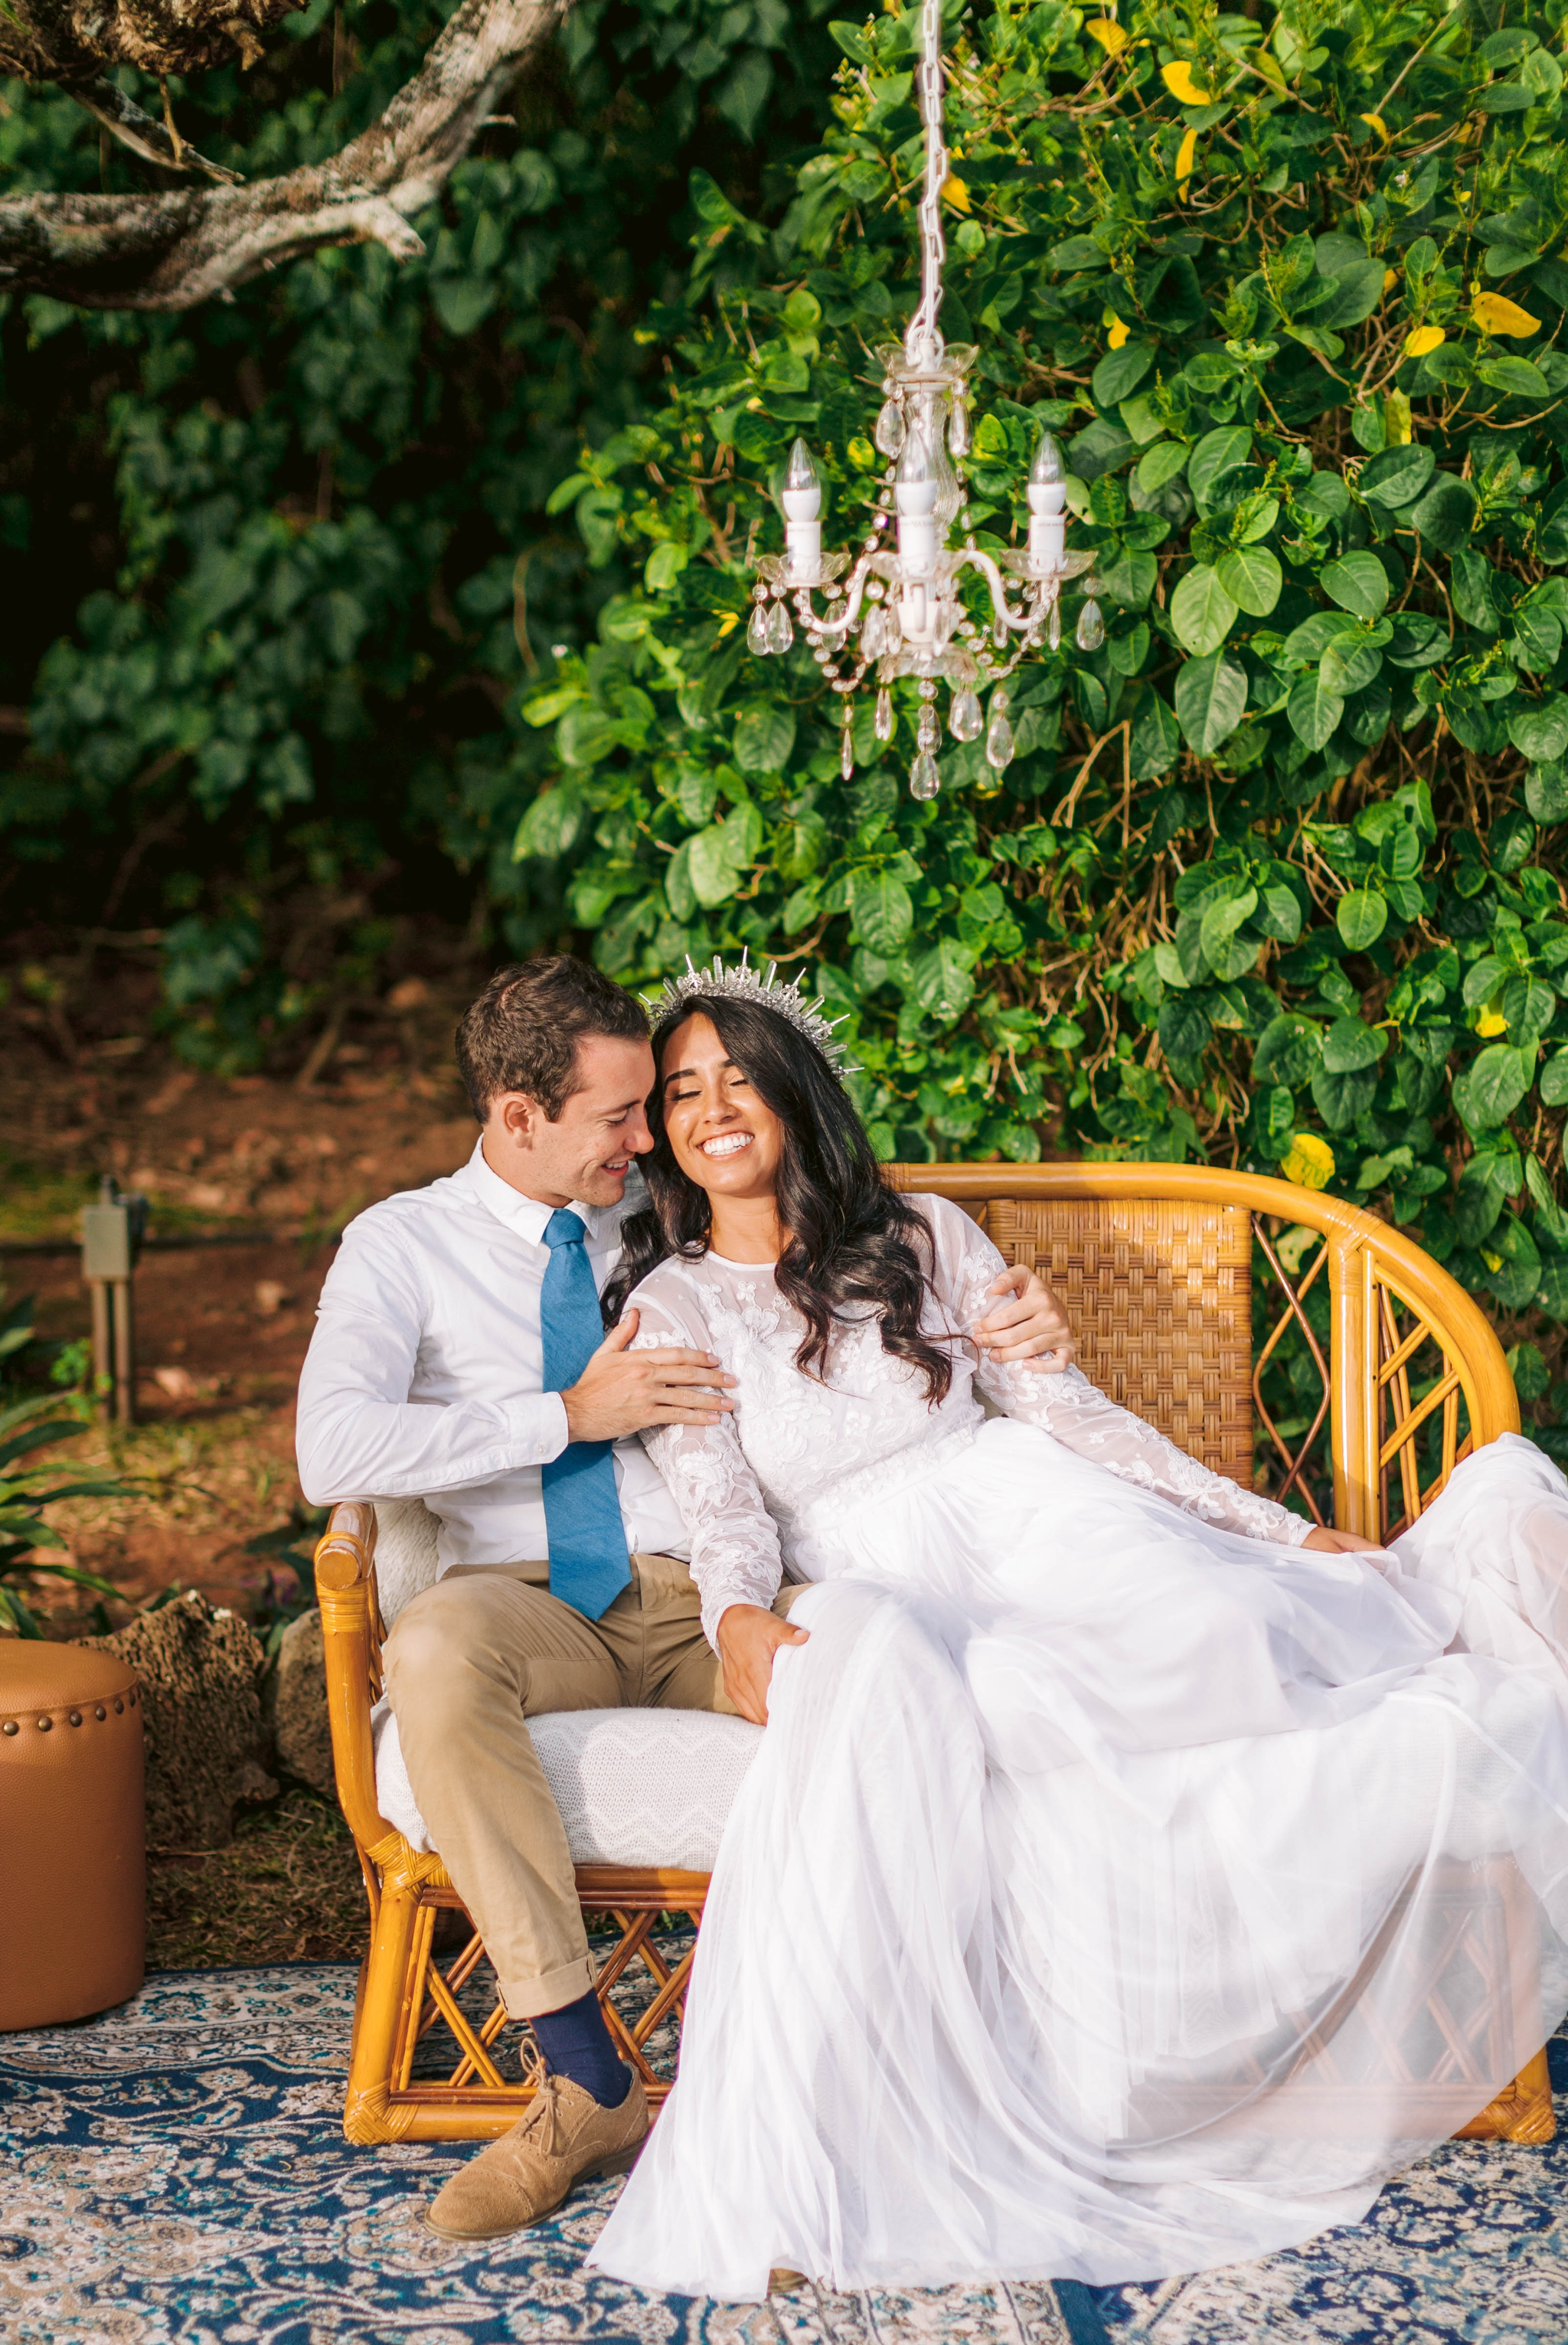 Bride and groom cuddeling an outdoor lounge - white dress by asos - unique crystal crown Ana + Elijah - Wedding at Loulu Palm in Haleiwa, HI - Oahu Hawaii Wedding Photographer - #hawaiiweddingphotographer #oahuweddings #hawaiiweddings